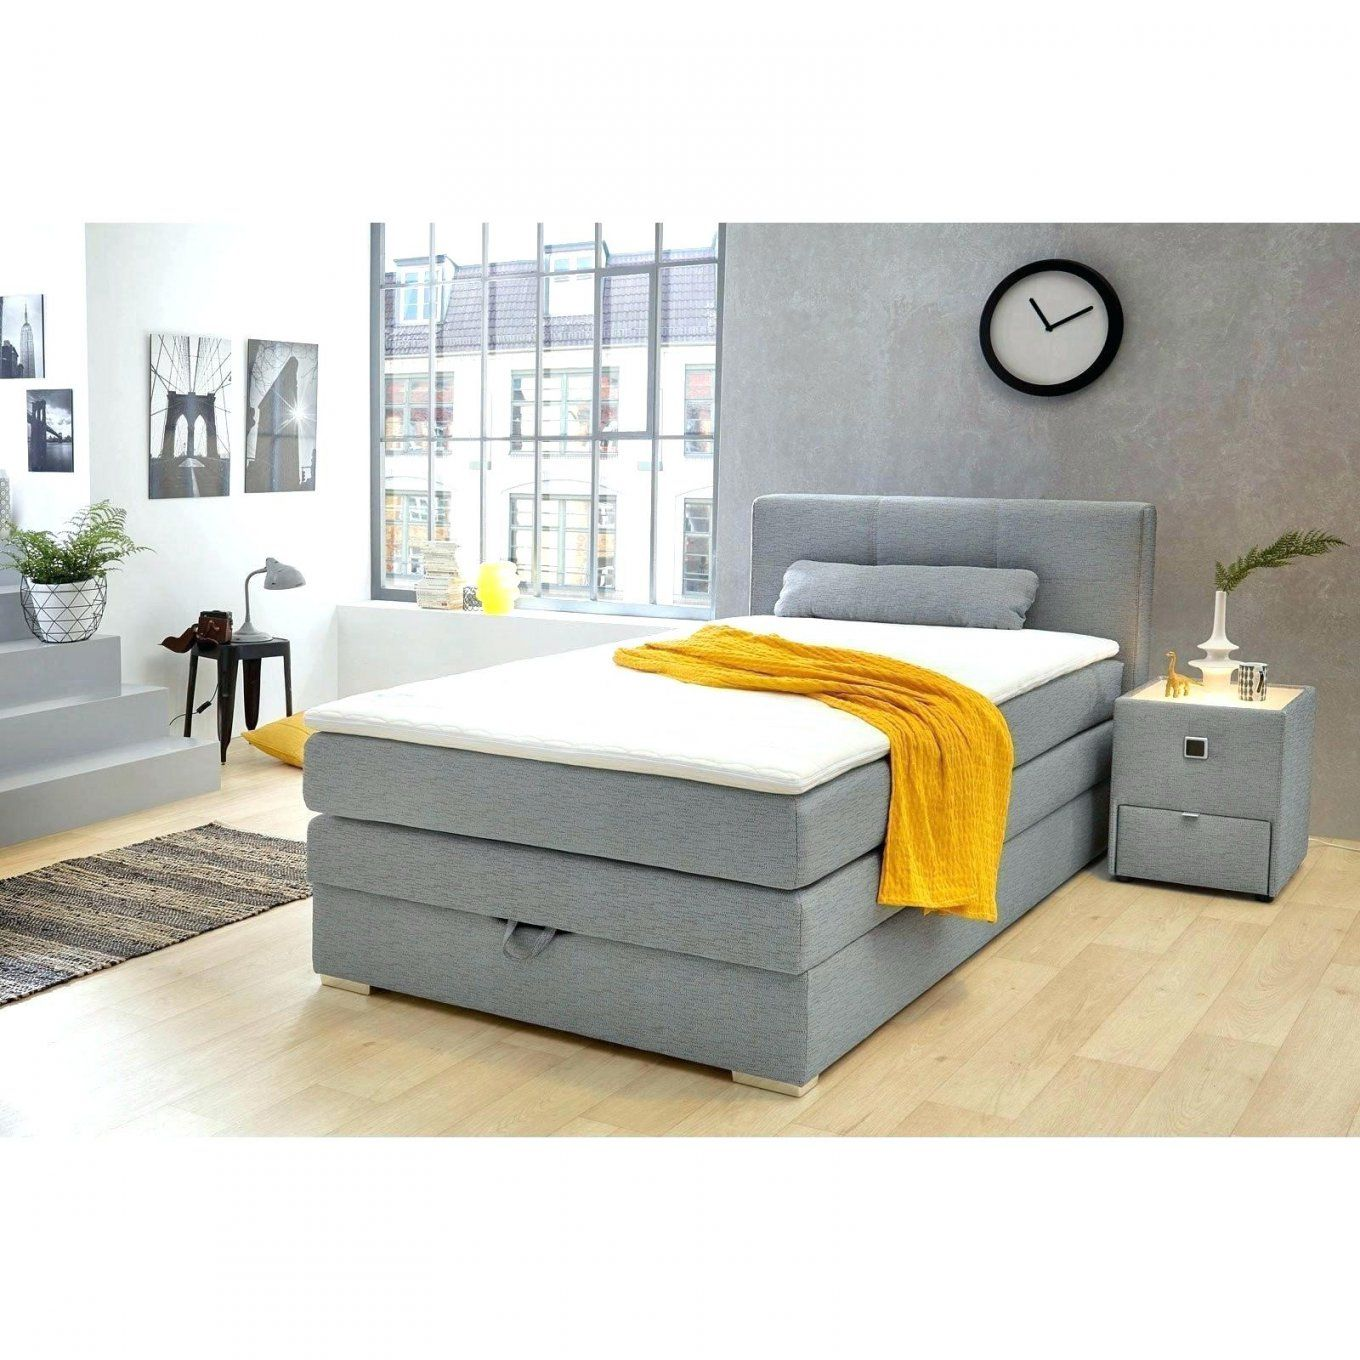 Couchtisch 90x90 Buche Boxspringbett Forum Top 1 William Bugatti Ikea